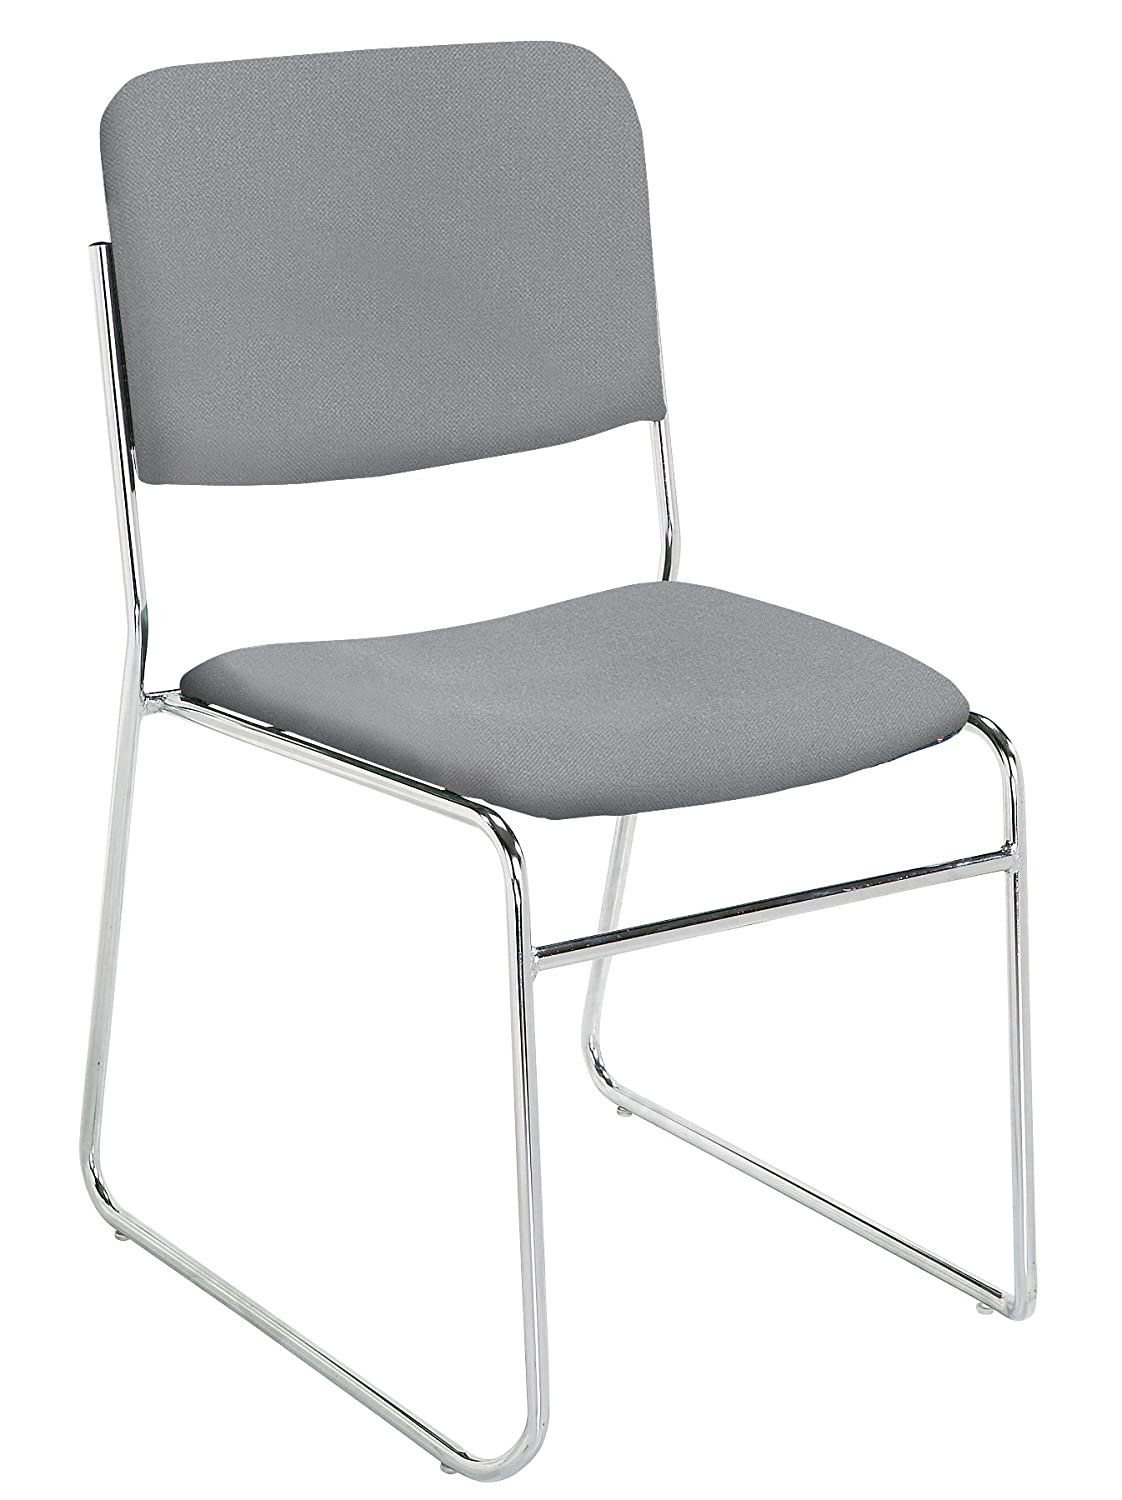 NPS 8652 Fabric-Upholstered Sled Base Signature Stack Chair, 300-Pound Weight Capacity, 19-Inch Length x 21-Inch Width x 33-Inch Height, Grey National Public Seating